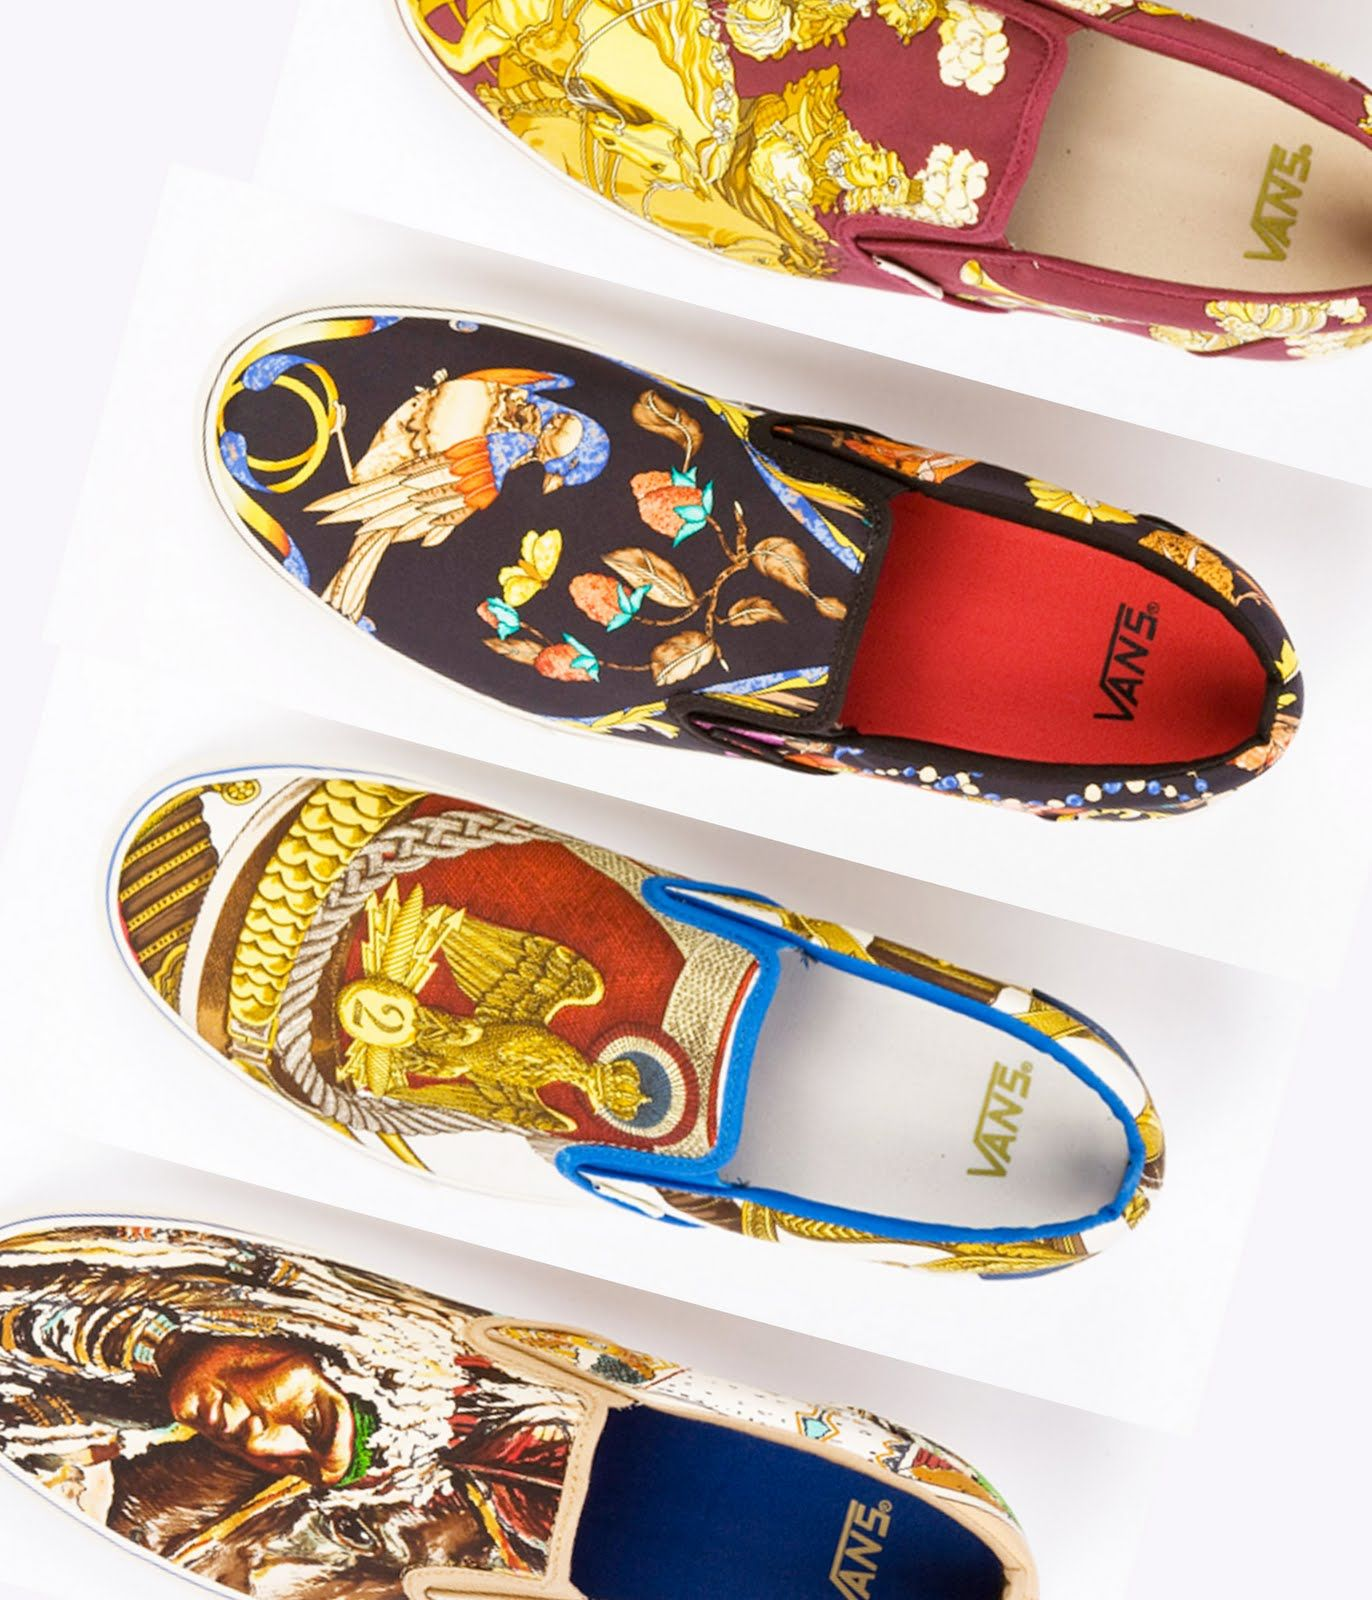 Vans x Hermes - I don't think I'd wear these, but damn!